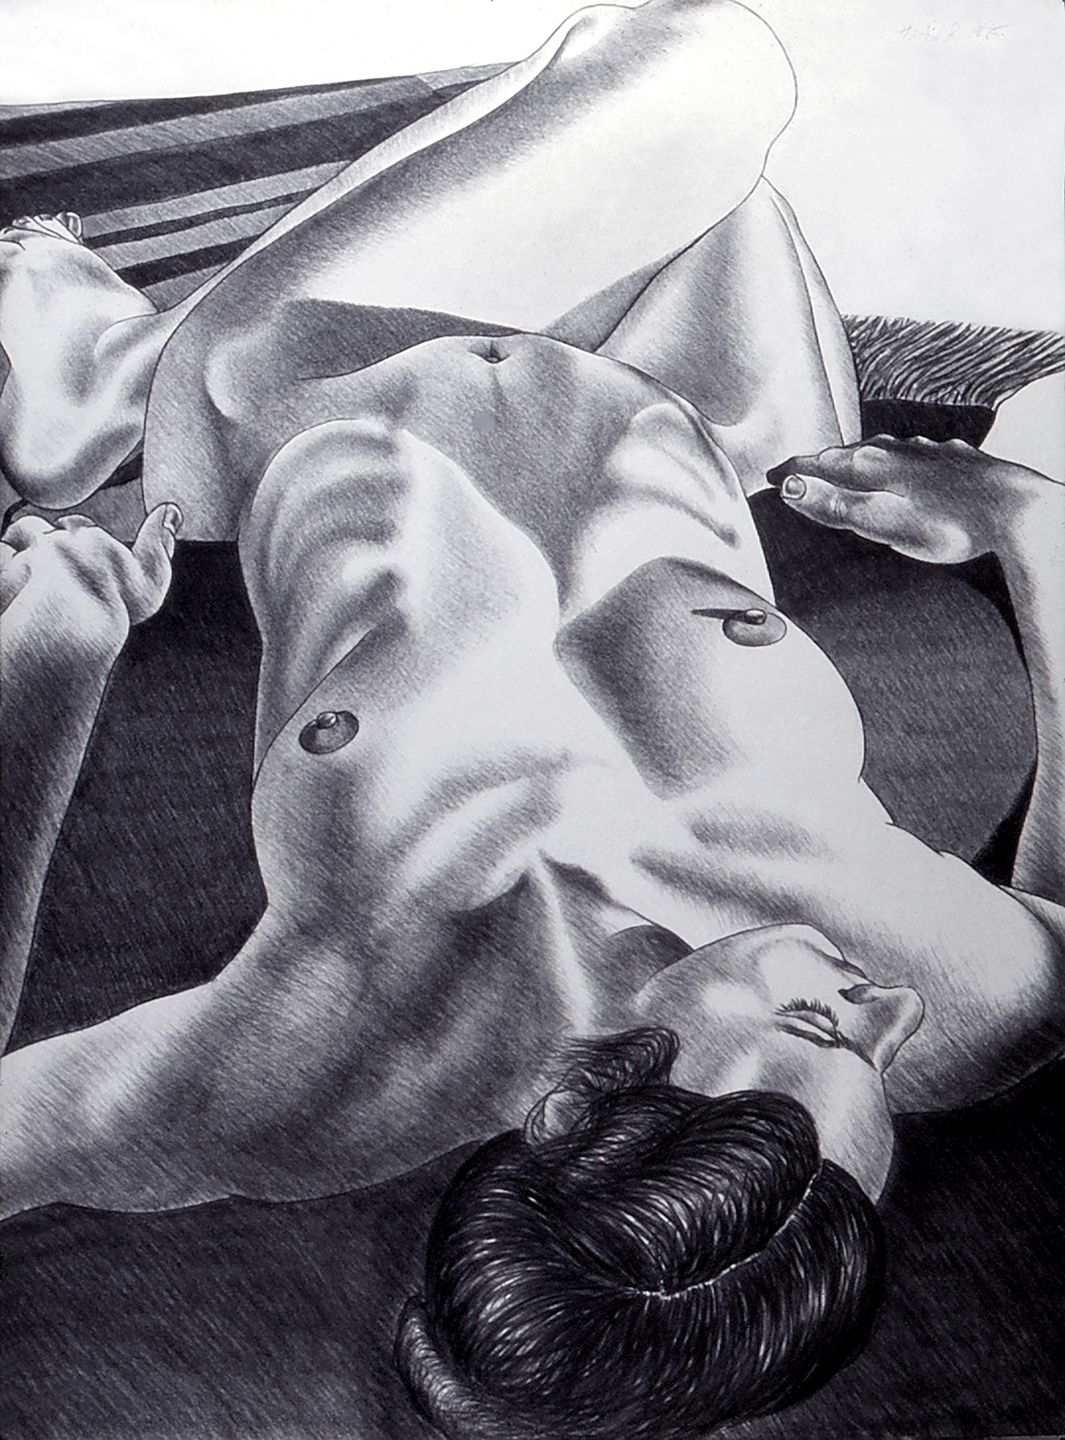 Nude on Cushion and Rug, 1975  Charcoal on Rives